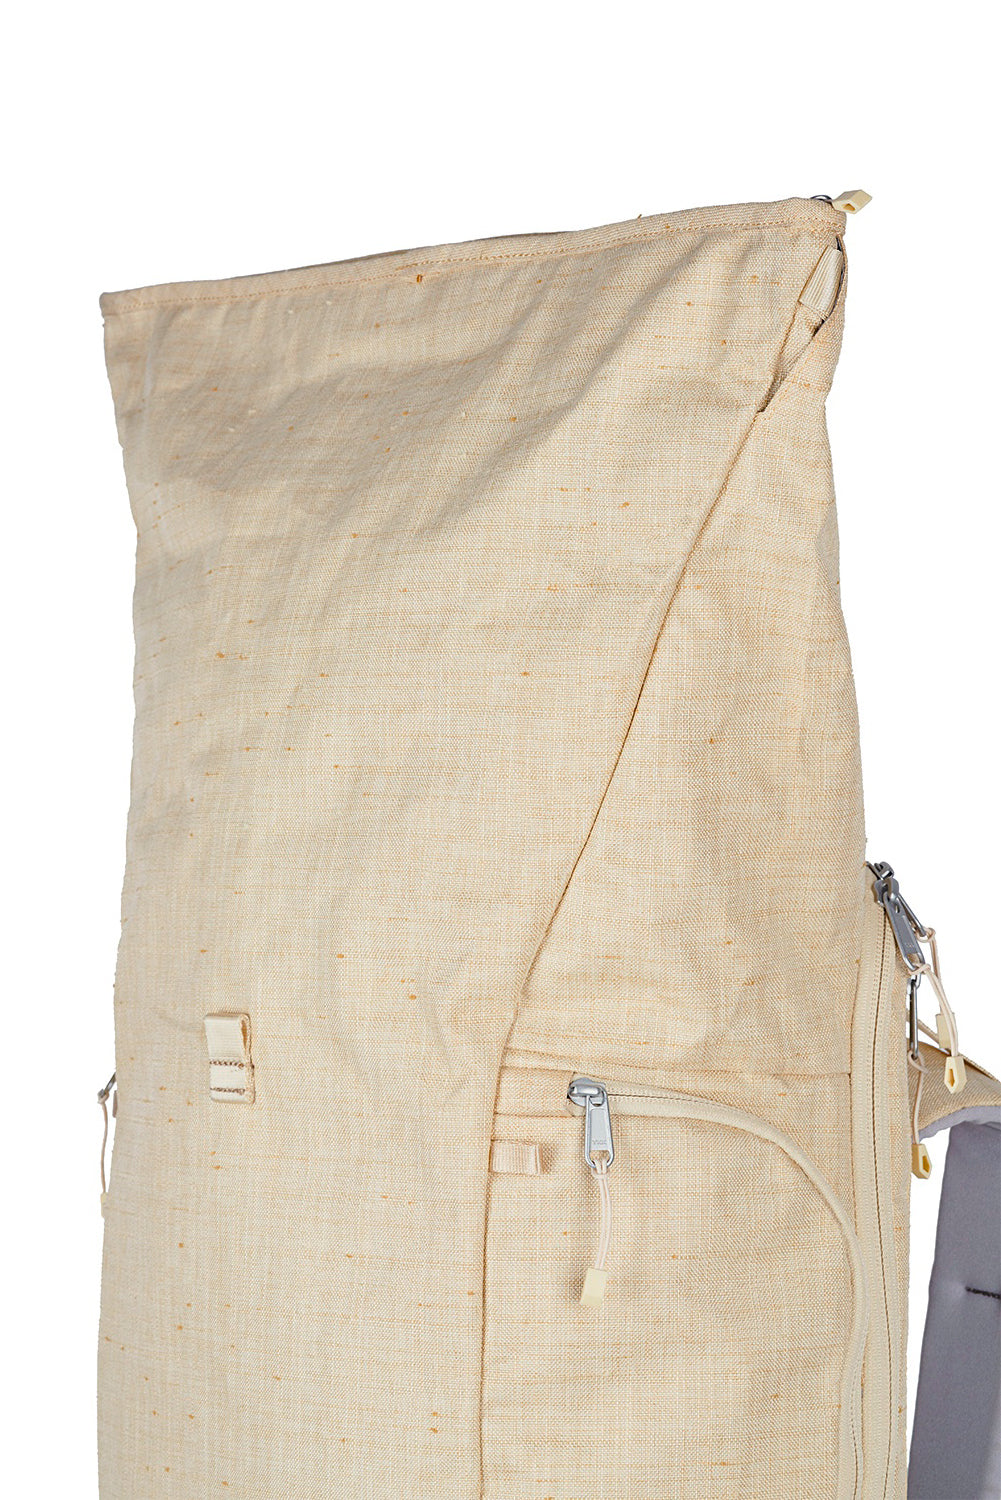 WAYKS Travel Backpack Sand Filled Top